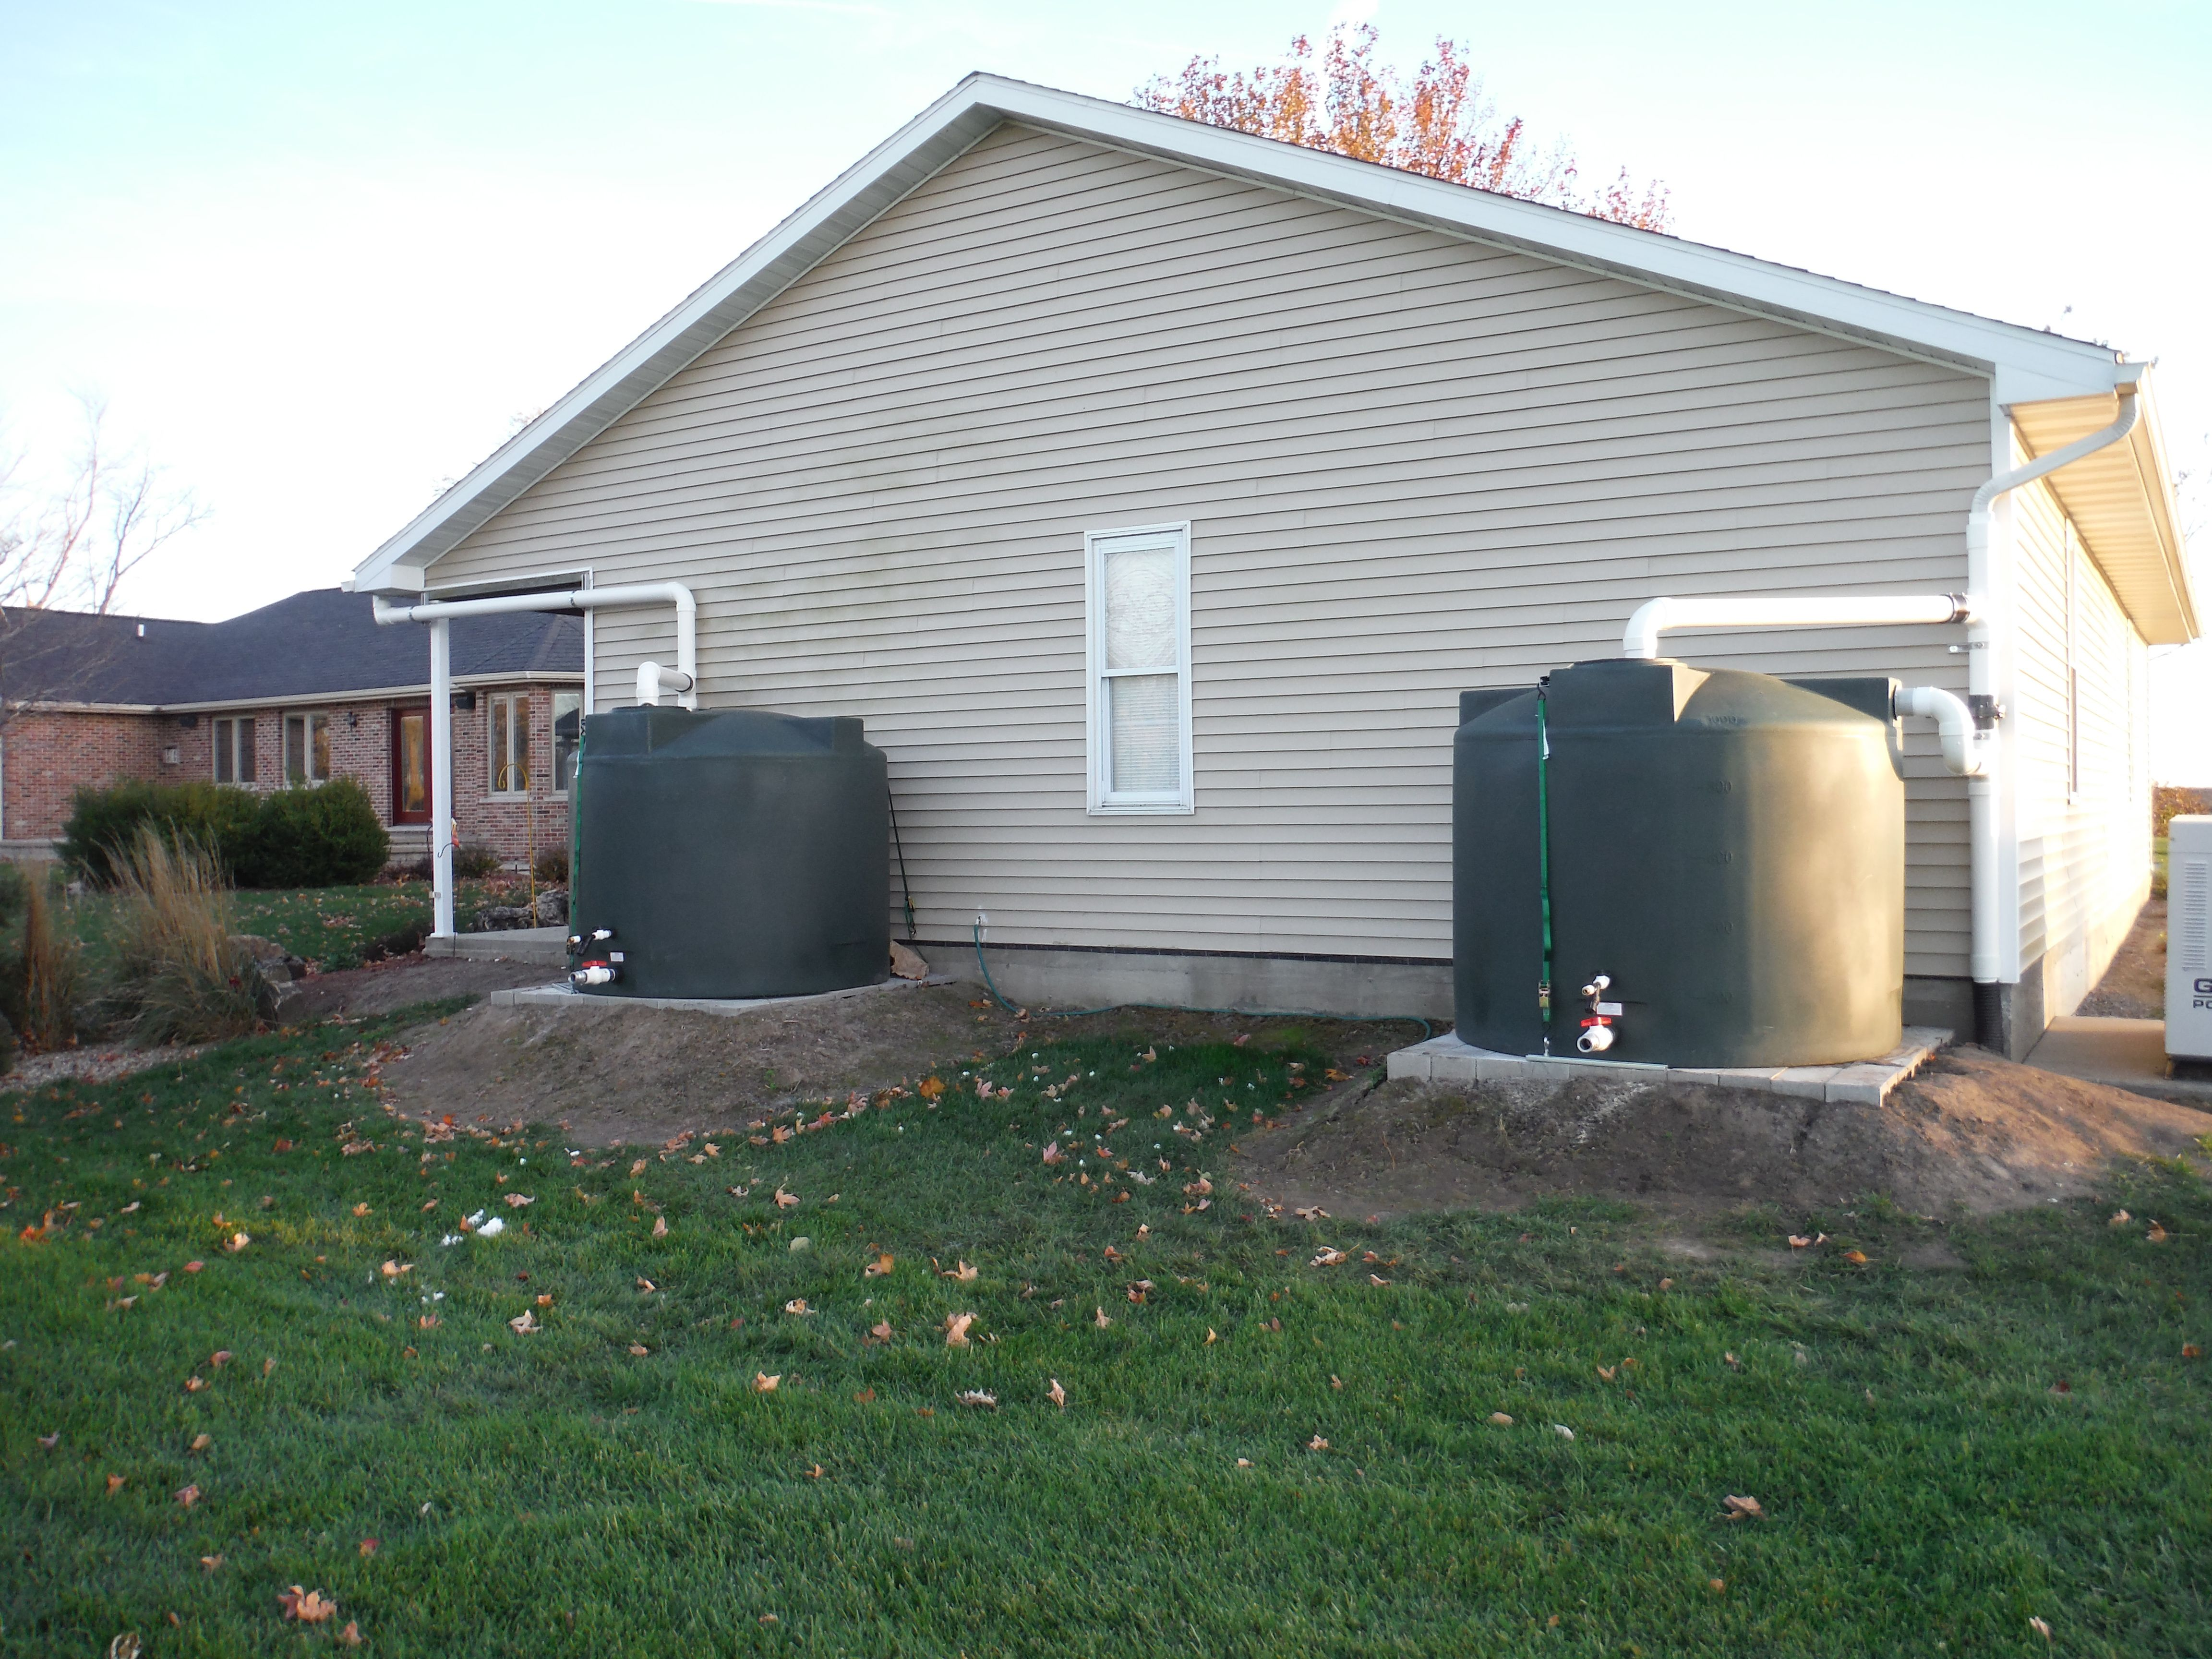 2 1000 Gallon Poly Mart Rainwater Tanks Installed In Illinois These Tanks Provide The Bulk Of Rainwater Harvesting Rainwater Harvesting System Organic Yard